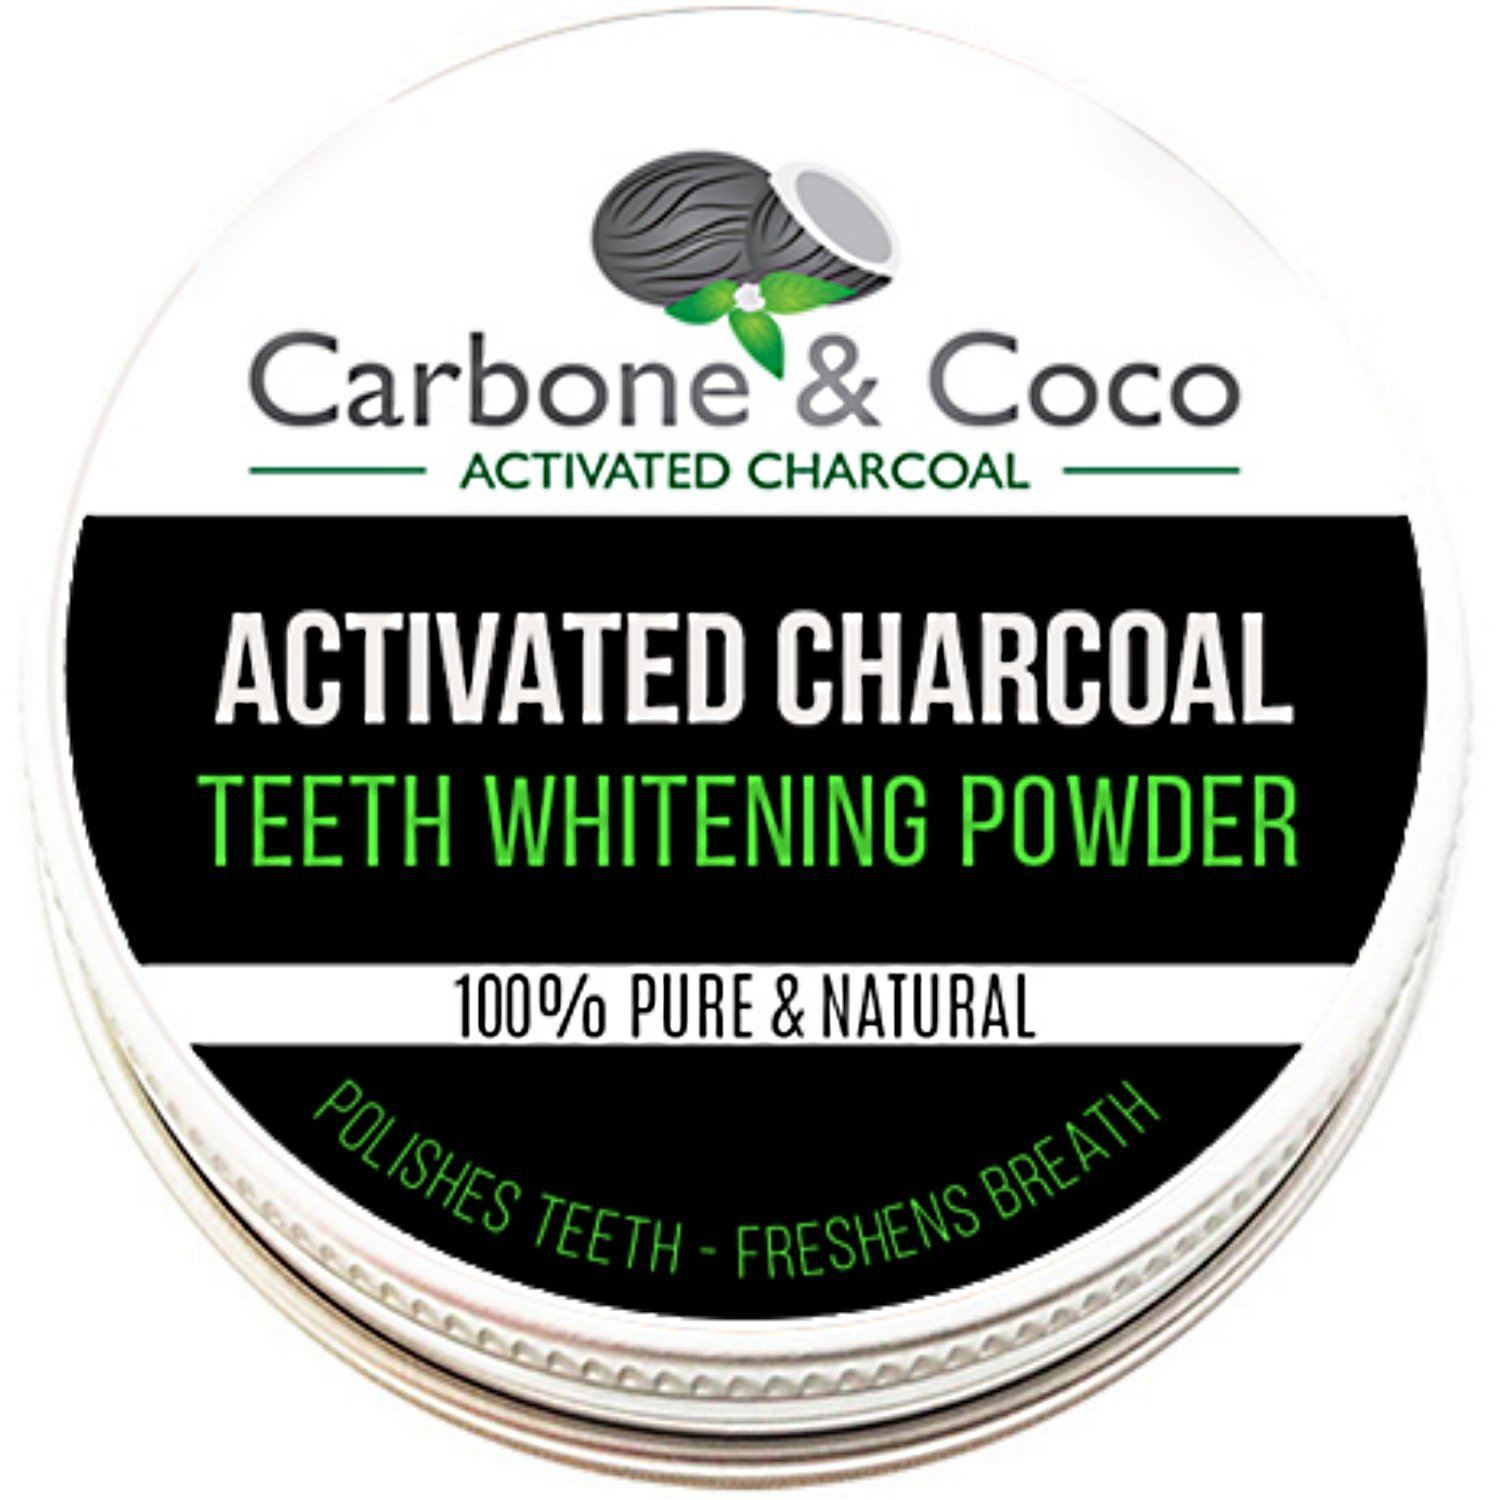 Carbone & CocoTM Coconut Charcoal Activated Whitening Herbal Tooth Teeth & Gum Powder Toothpaste Vegan Organic Peppermint Pure UK Manufactured 100% Natural Flouride Free Polish 30ML product image